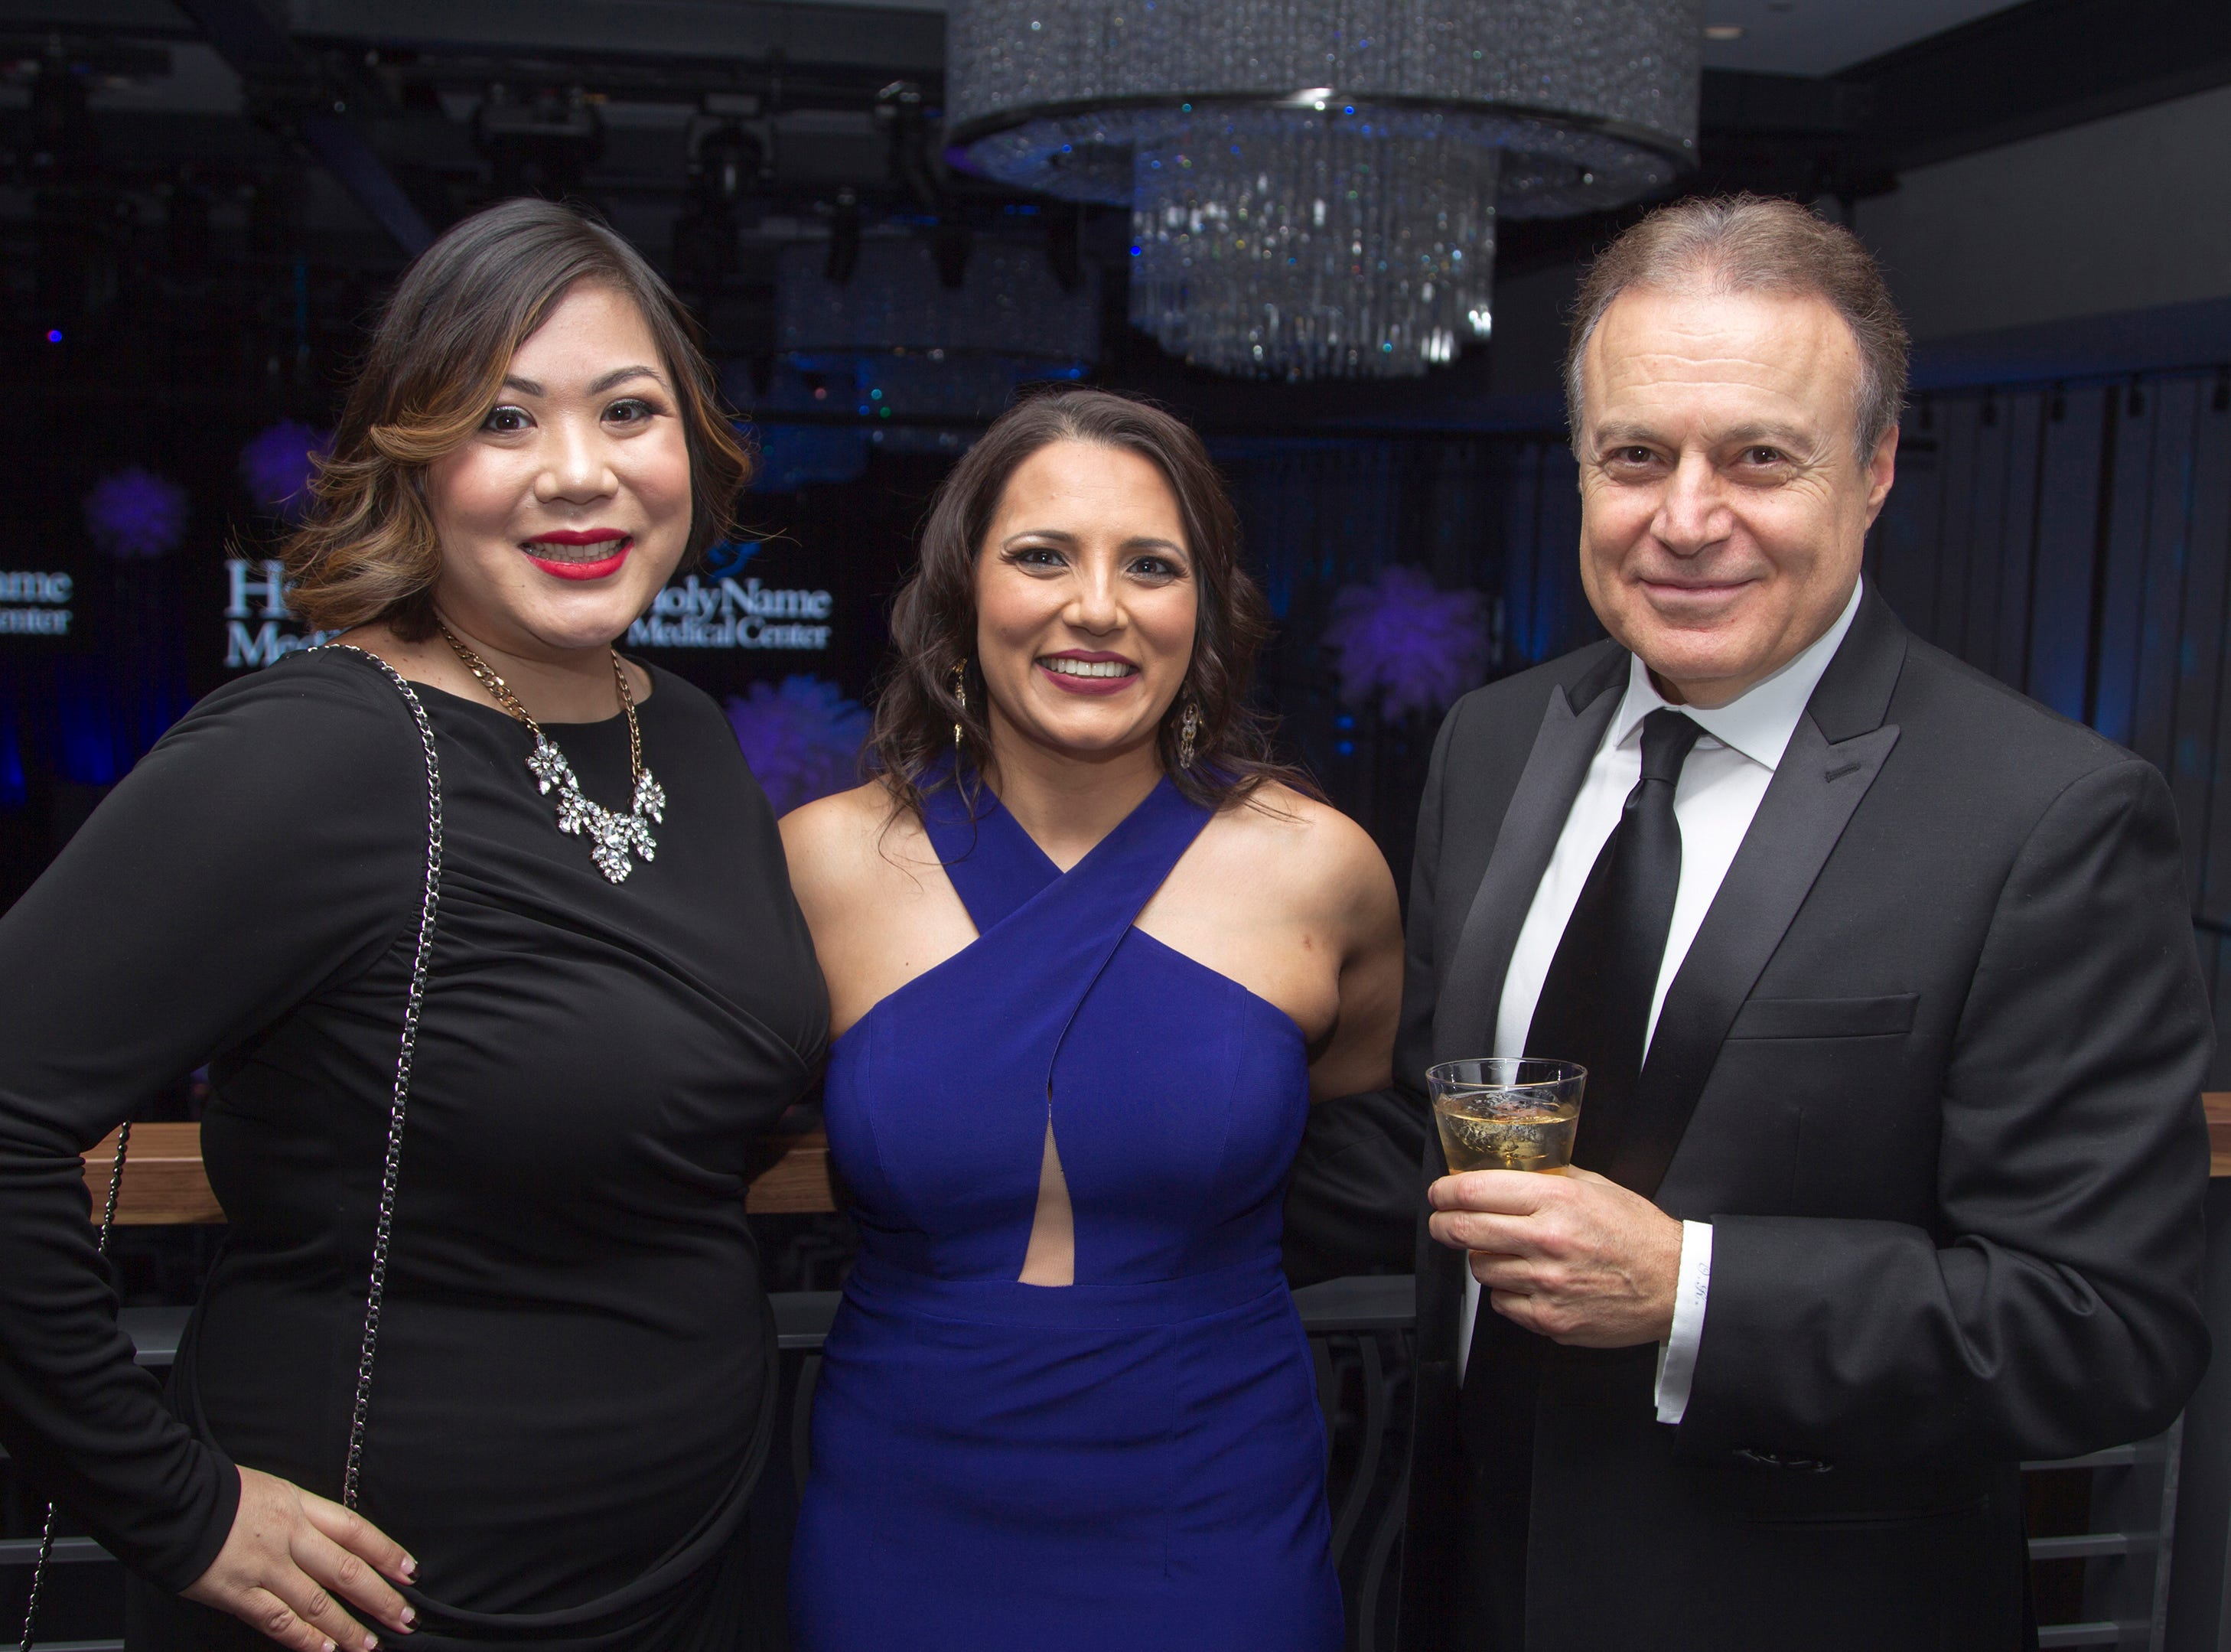 Dr. Nicole Palomar, Dr. Payal Shah, Dr. Ohan Karatoprak. Holy Name Medical Center held its 2018 Founders Ball in NYC at Ziegfeld Ballroom. 11/17/2018